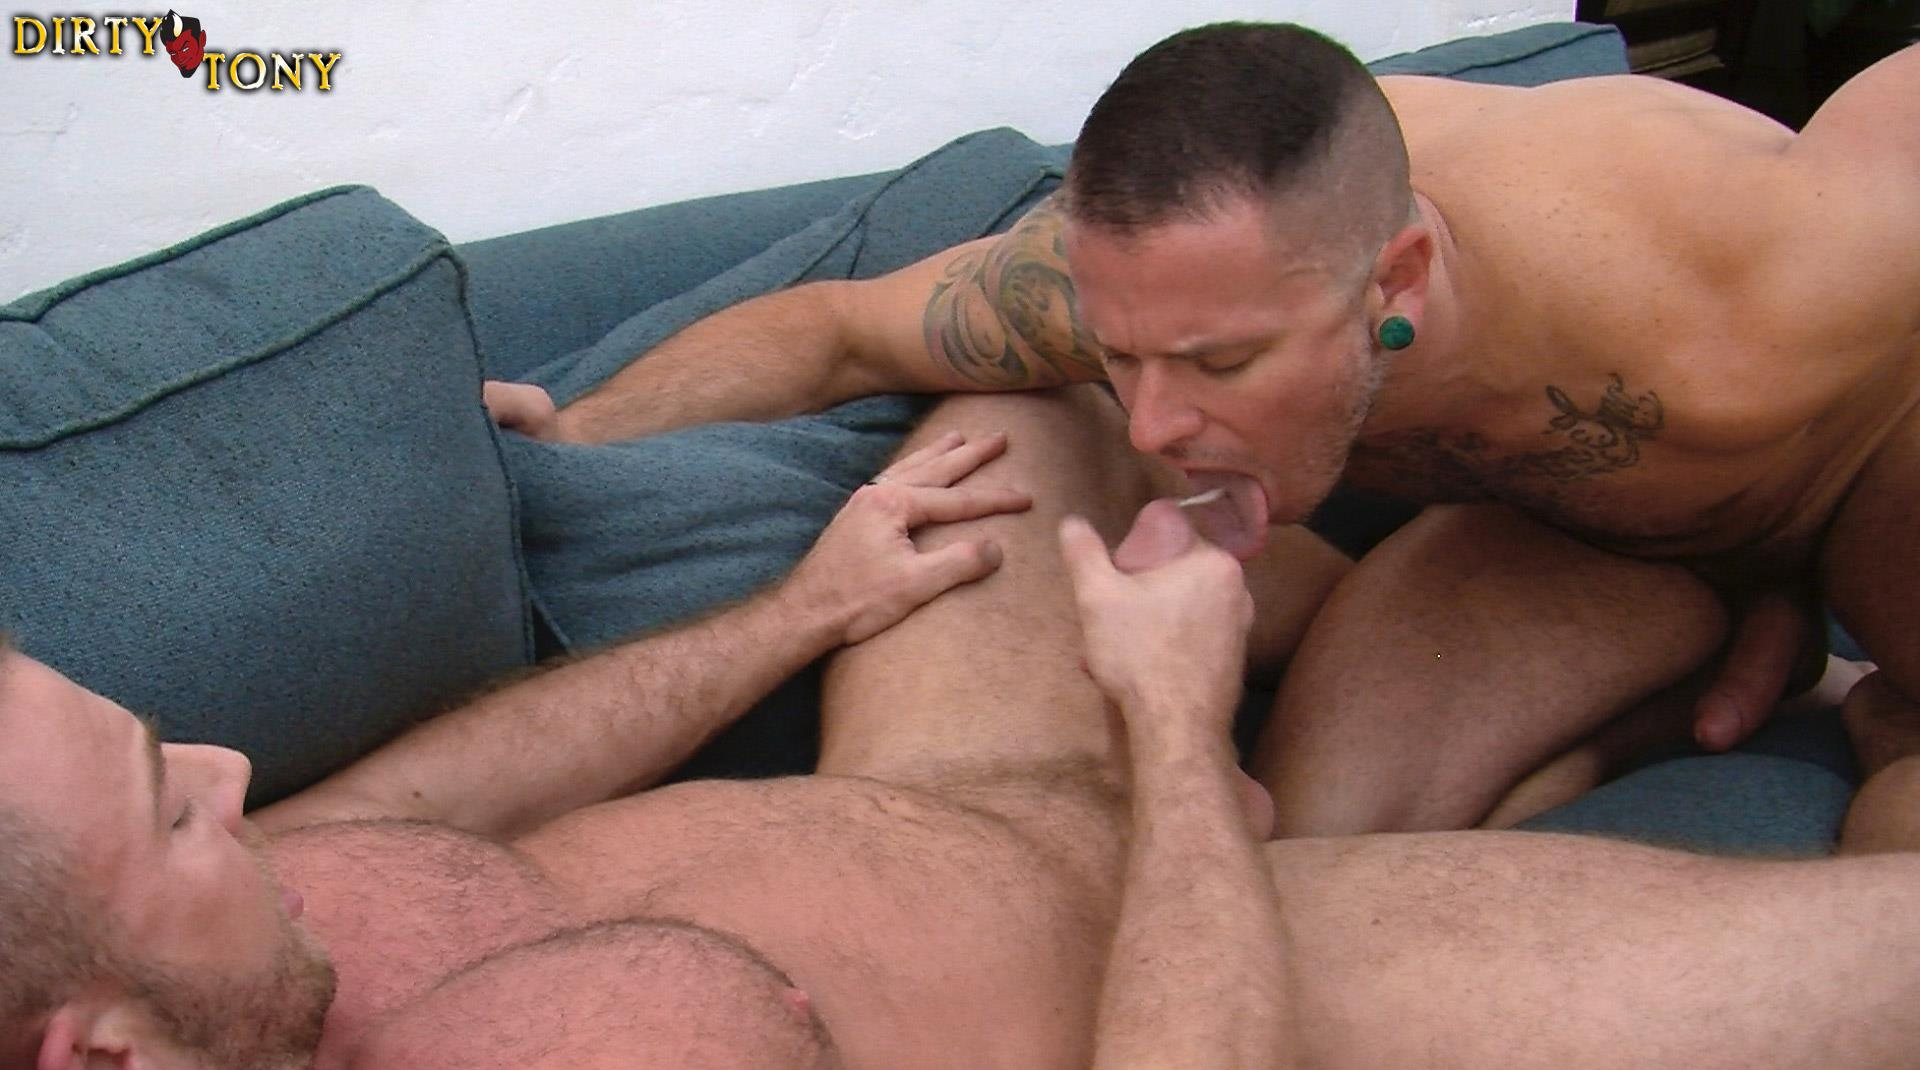 Dirty-Tony-Shay-Michaels-and-Max-Cameron-Hairy-Muscle-Hunk-Bareback-Amateur-Gay-Porn-14 Hairy Muscle Hunk Shay Michaels Barebacking Max Cameron